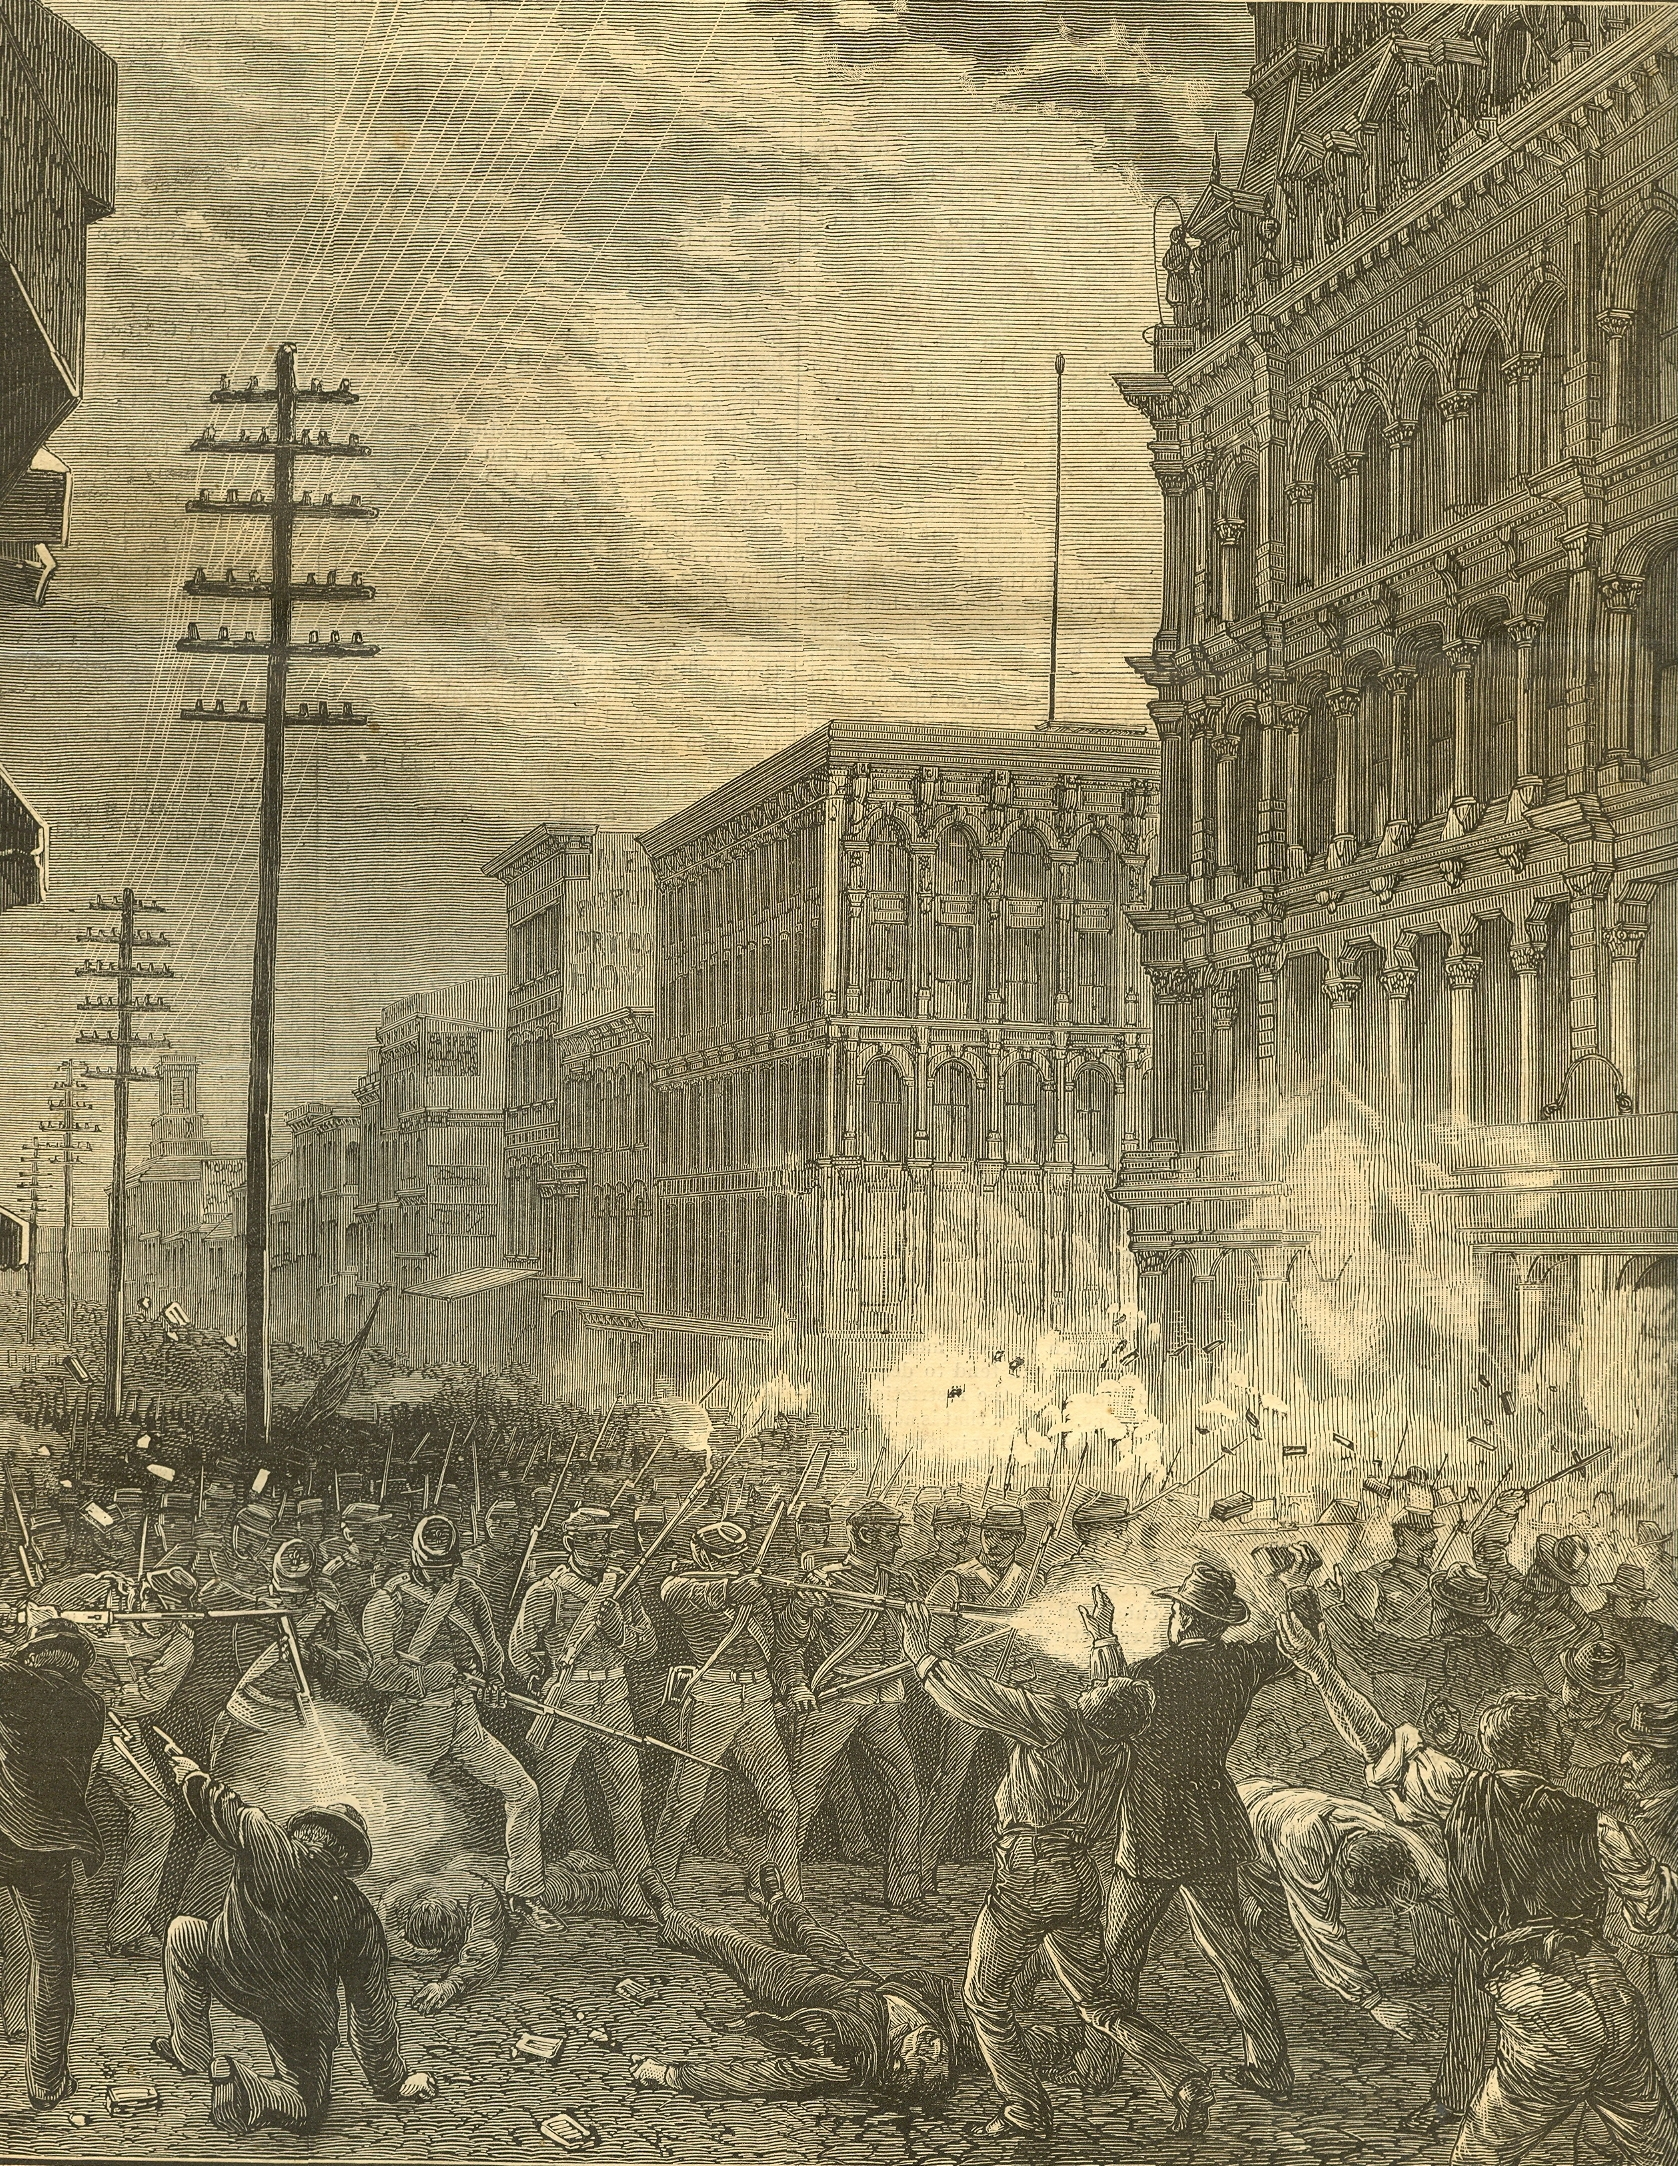 The St. Louis Commune of 1877—America's First General Strike